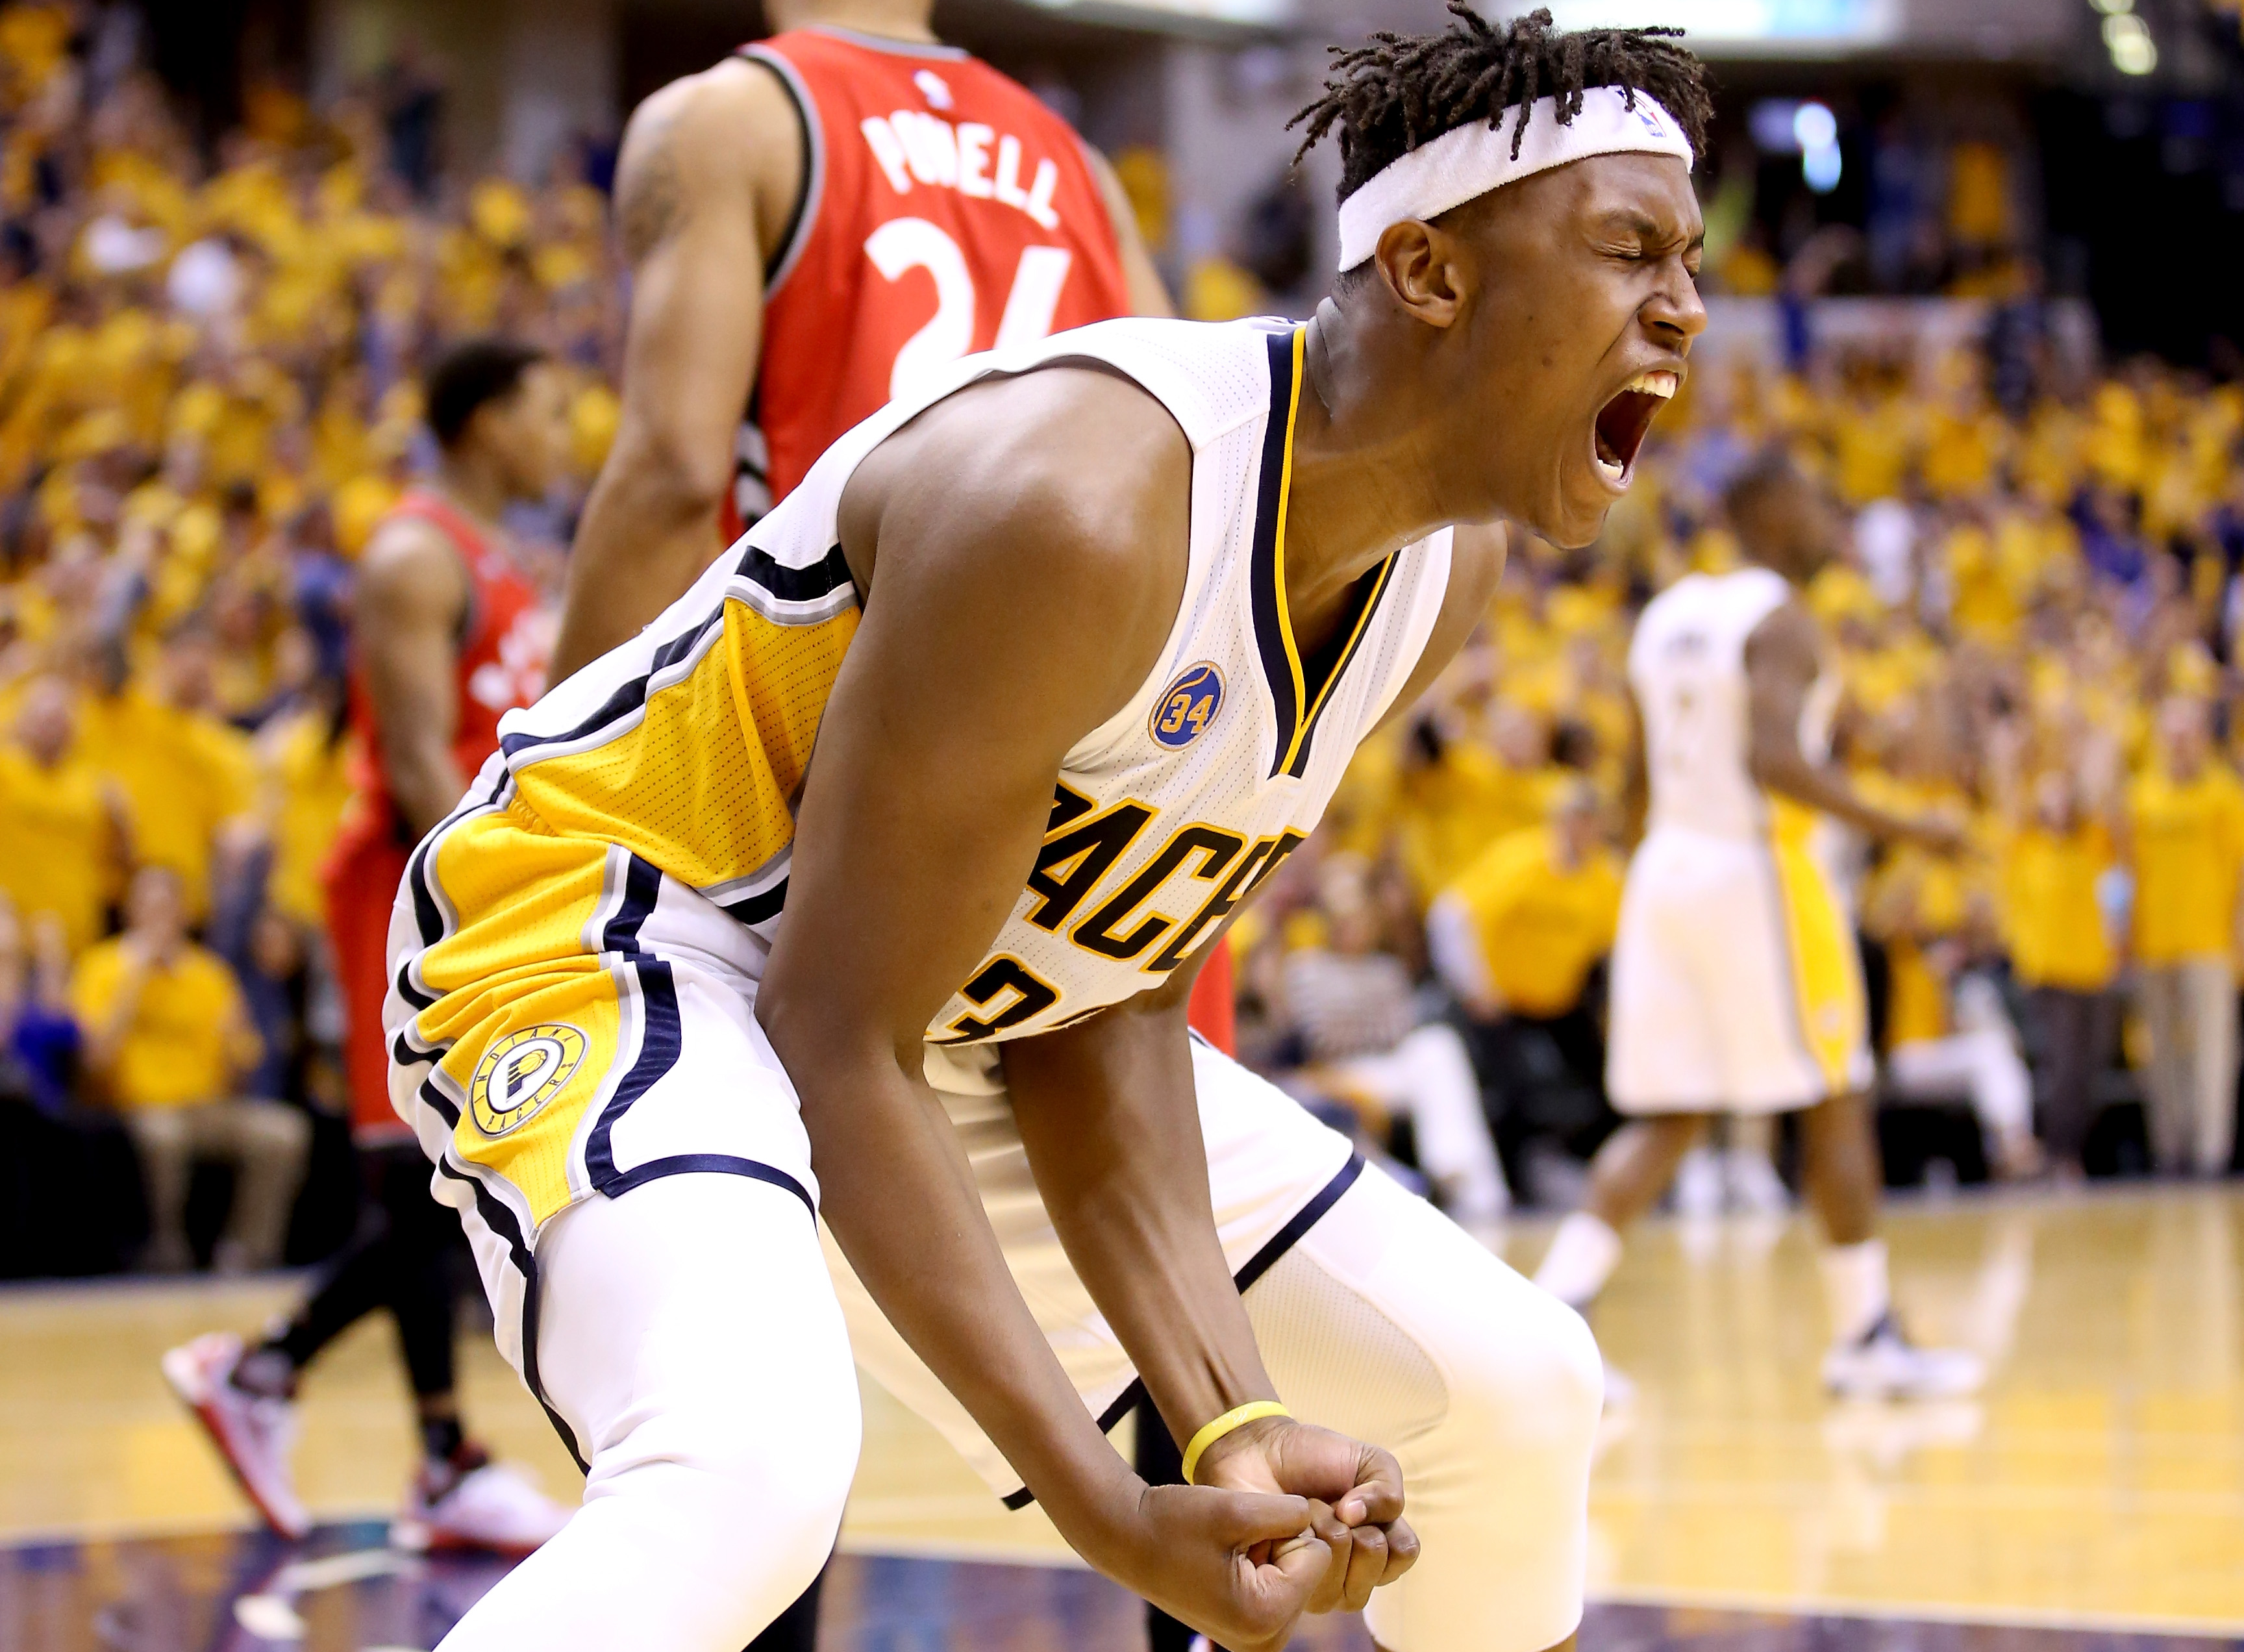 INDIANAPOLIS, IN - APRIL 29:  Myles Turner #33 of the Indiana Pacers celebrates during the 101-83 win over the Toronto Raptors in game six of the 2016 NBA Playoffs Eastern Conference Quarterfinals on April 29, 2016 in Indianapolis, Indiana.  (Photo by And